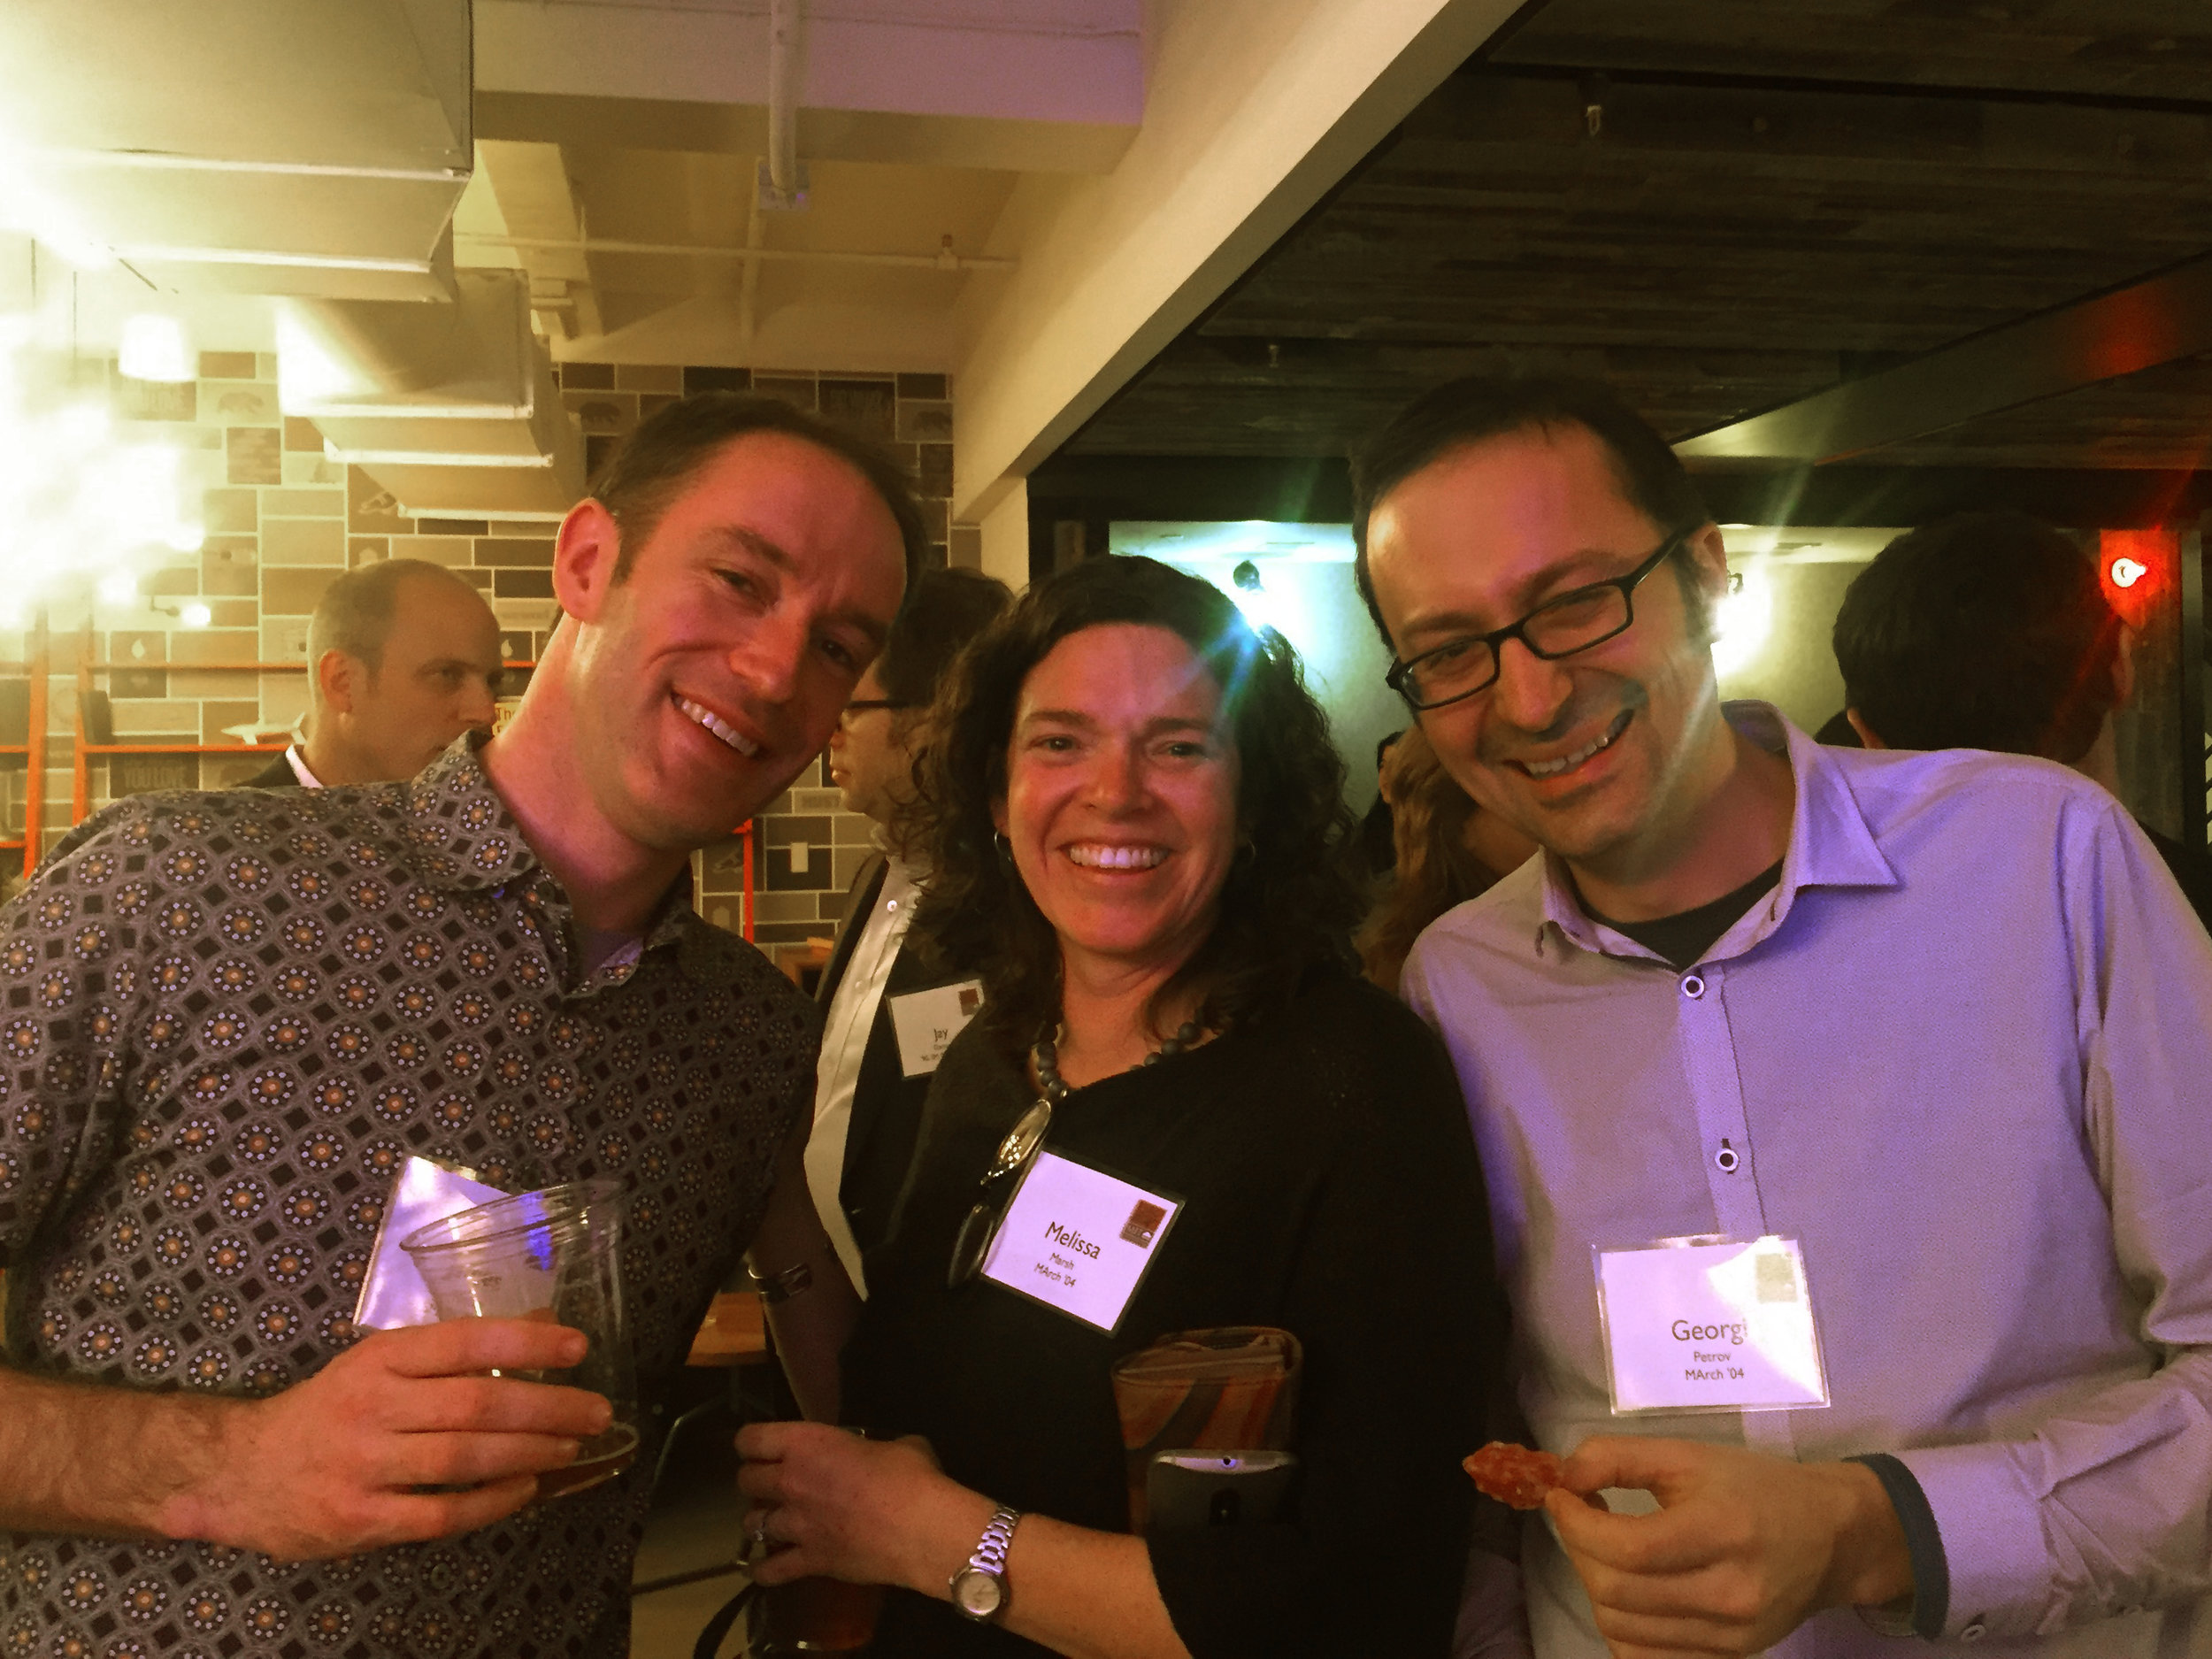 James Patten SMArchS 01; Melissa Marsh M.Arch '04; and Georgi Petrov MArch '04 at the reception prior to the event.